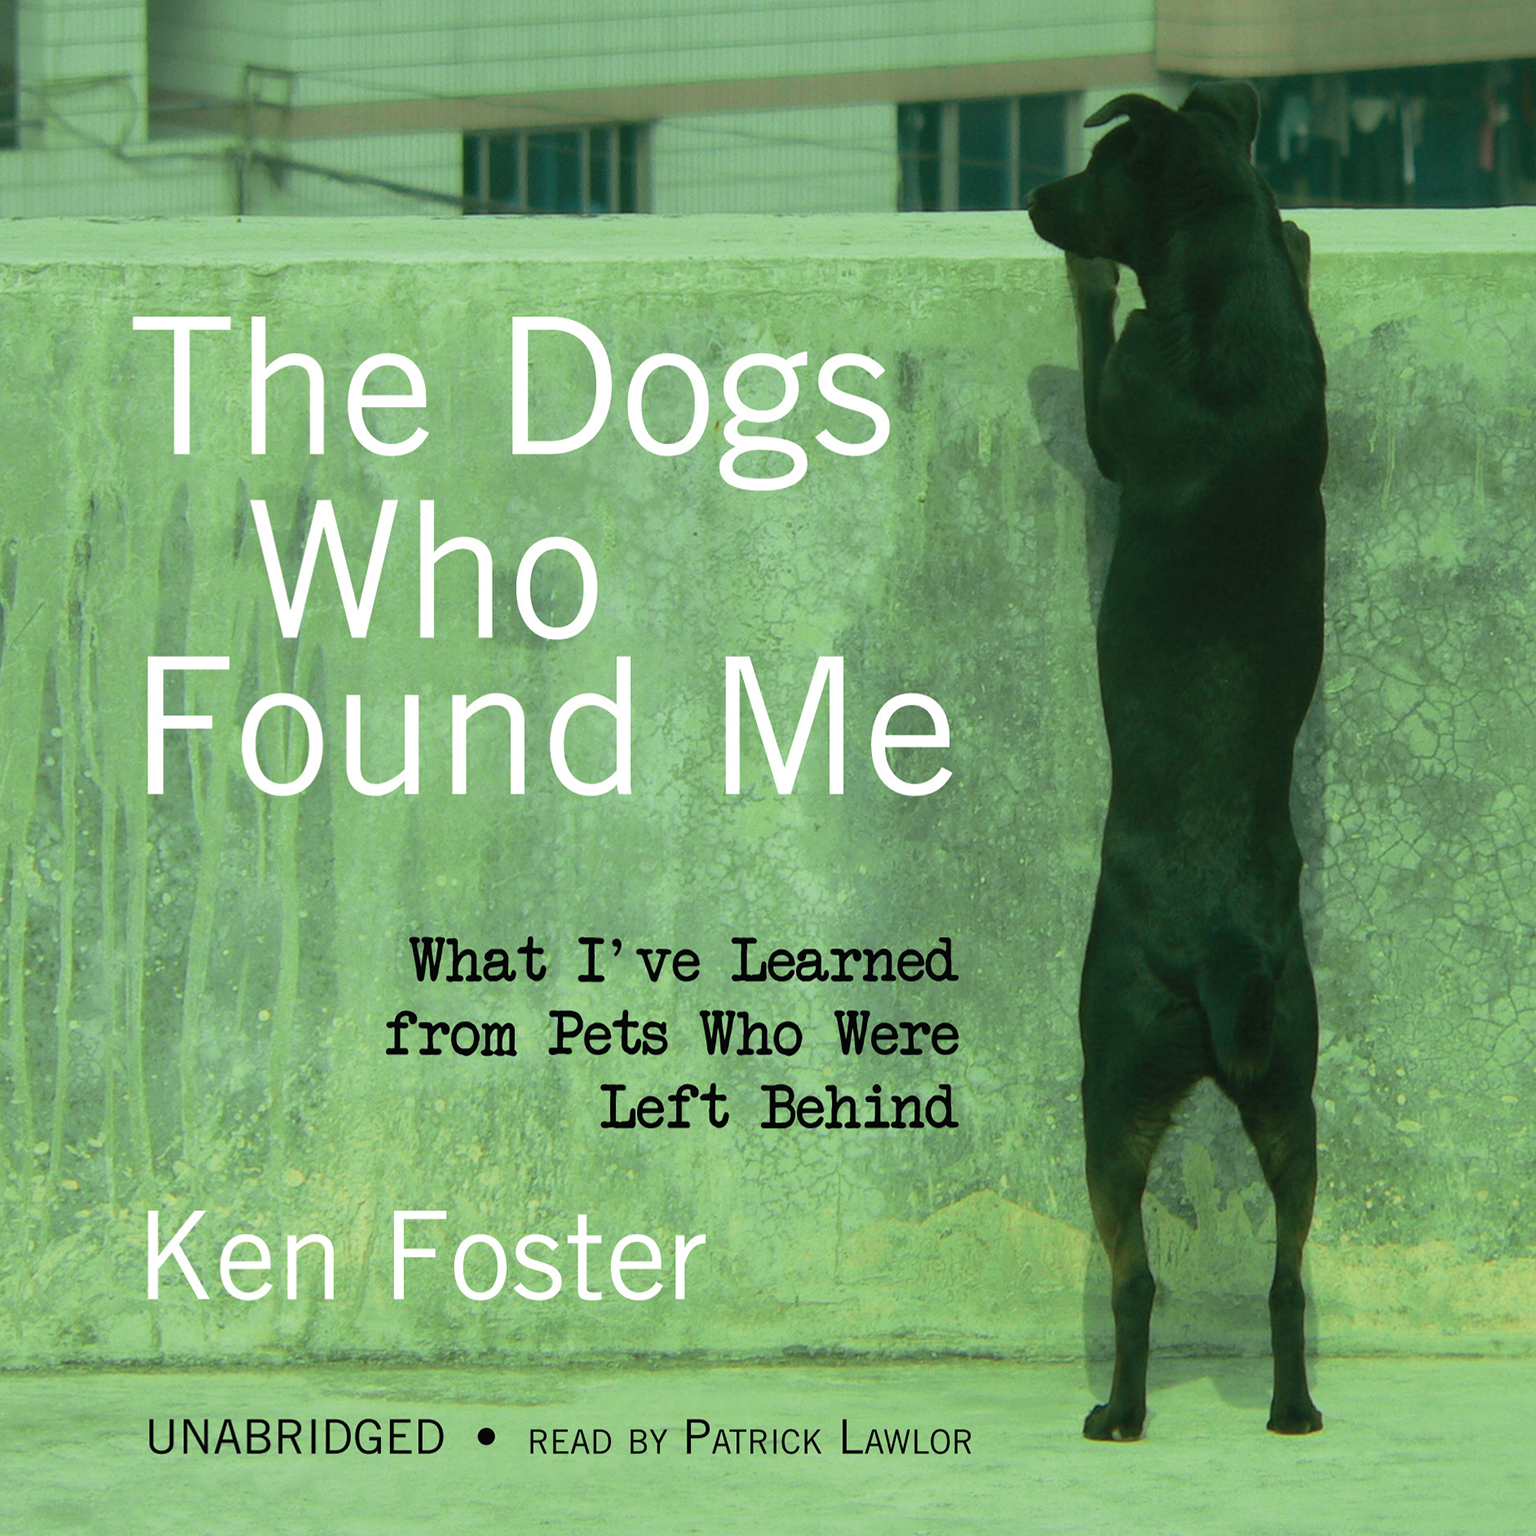 The Dogs Who Found Me cover unabridges